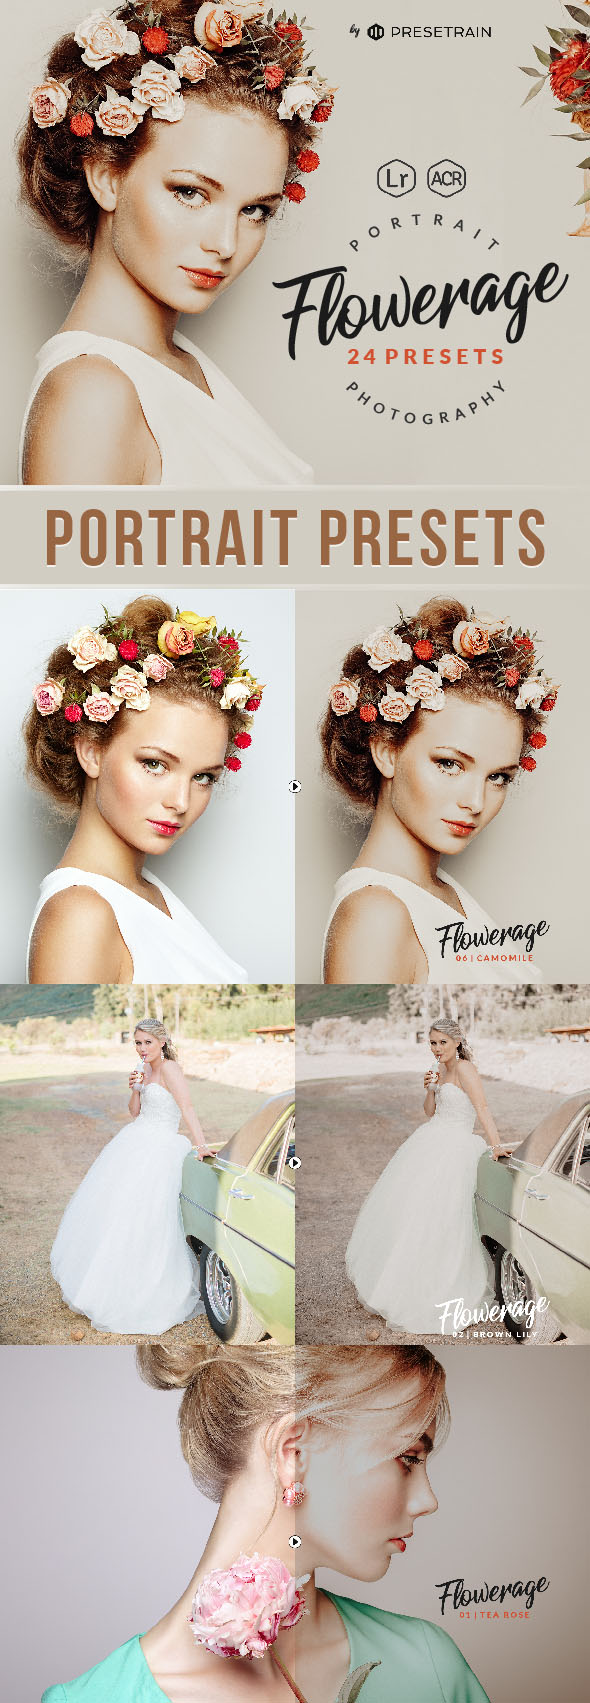 Flowerage Portrait Presets for Lightroom & ACR - Lightroom Presets Add-ons